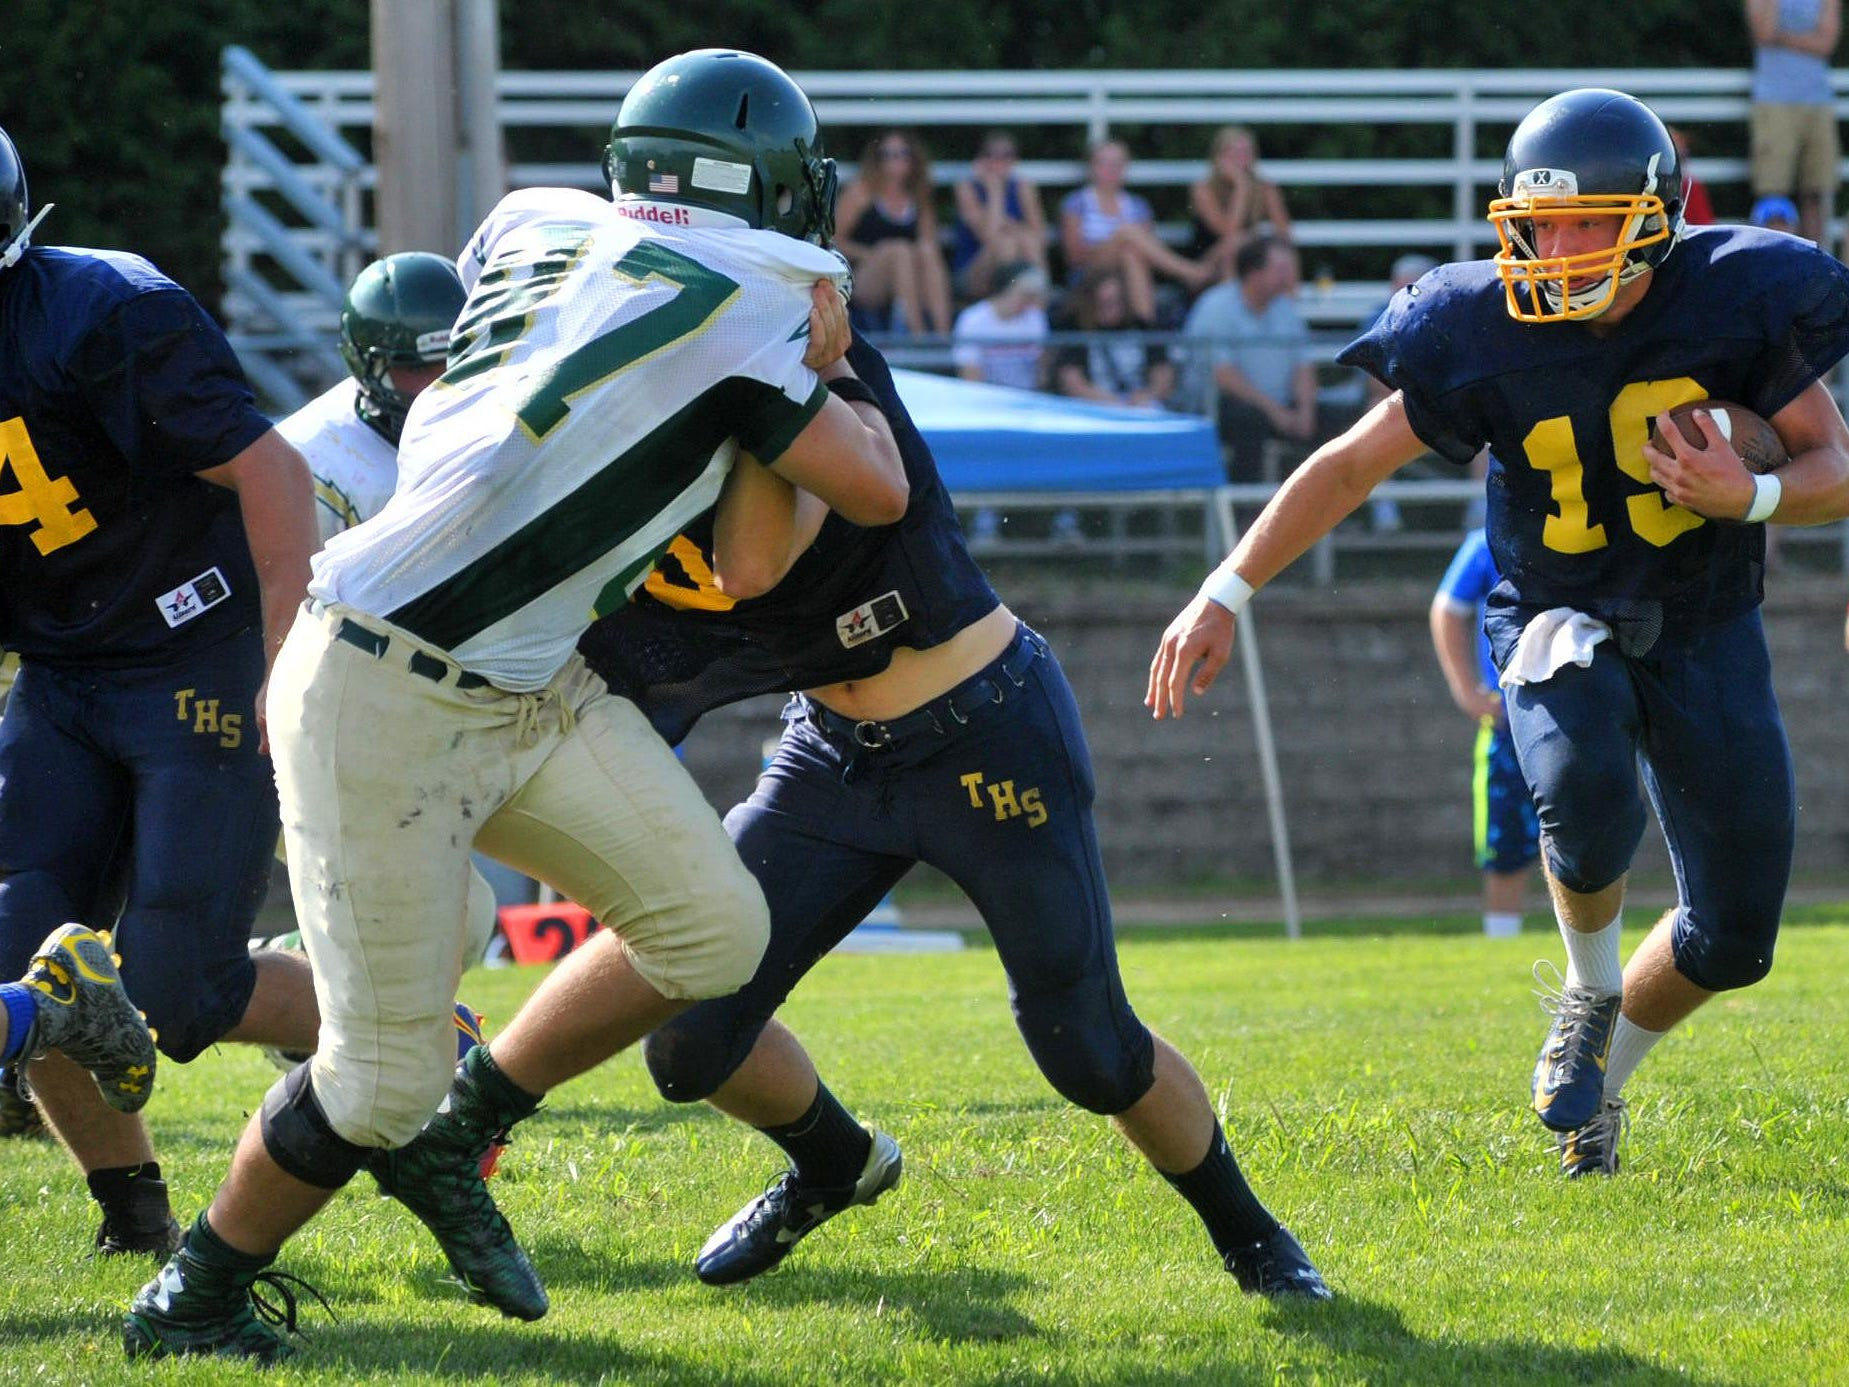 Tomahawk vs. Wittenberg-Birnamwood on scrimmage Friday afternoon at Athens High School football field.